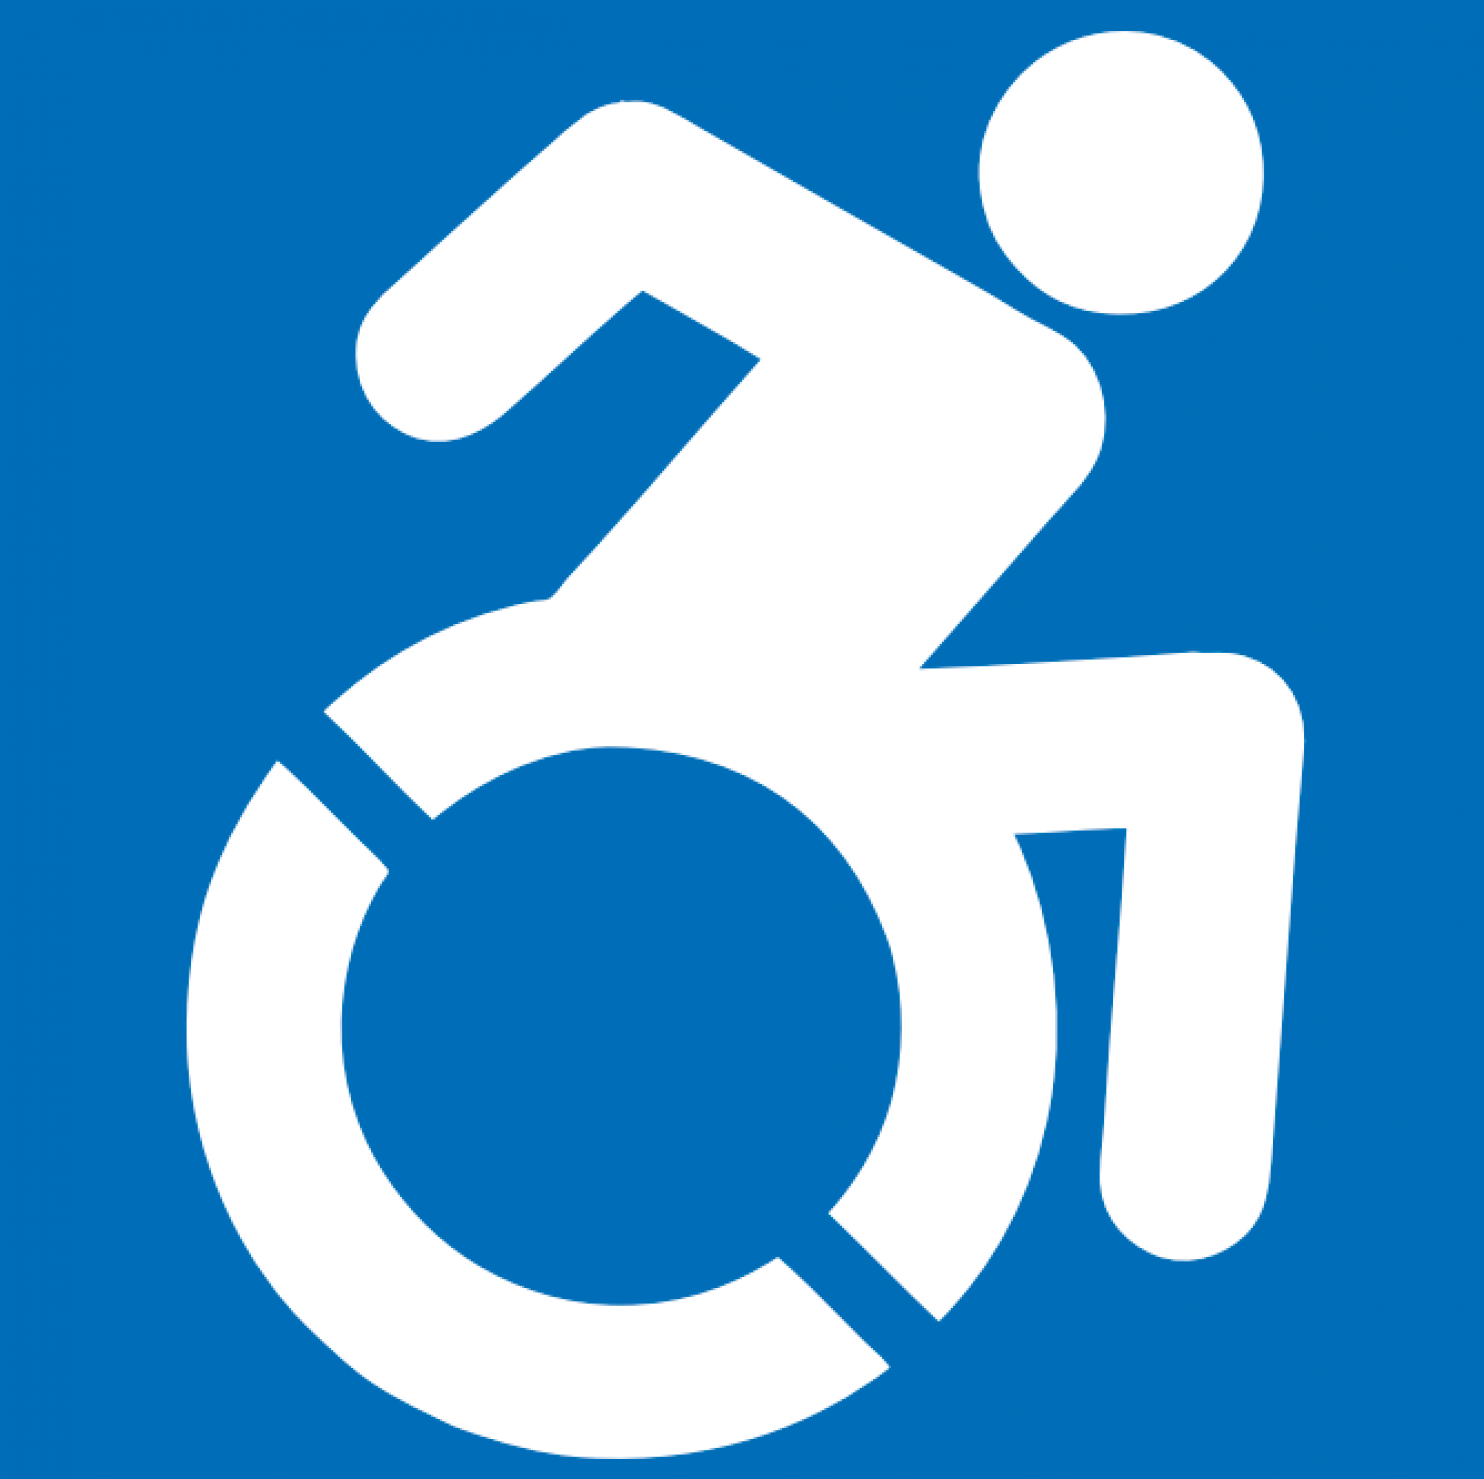 The Handicap Symbol Gets An Update At Least In New York State